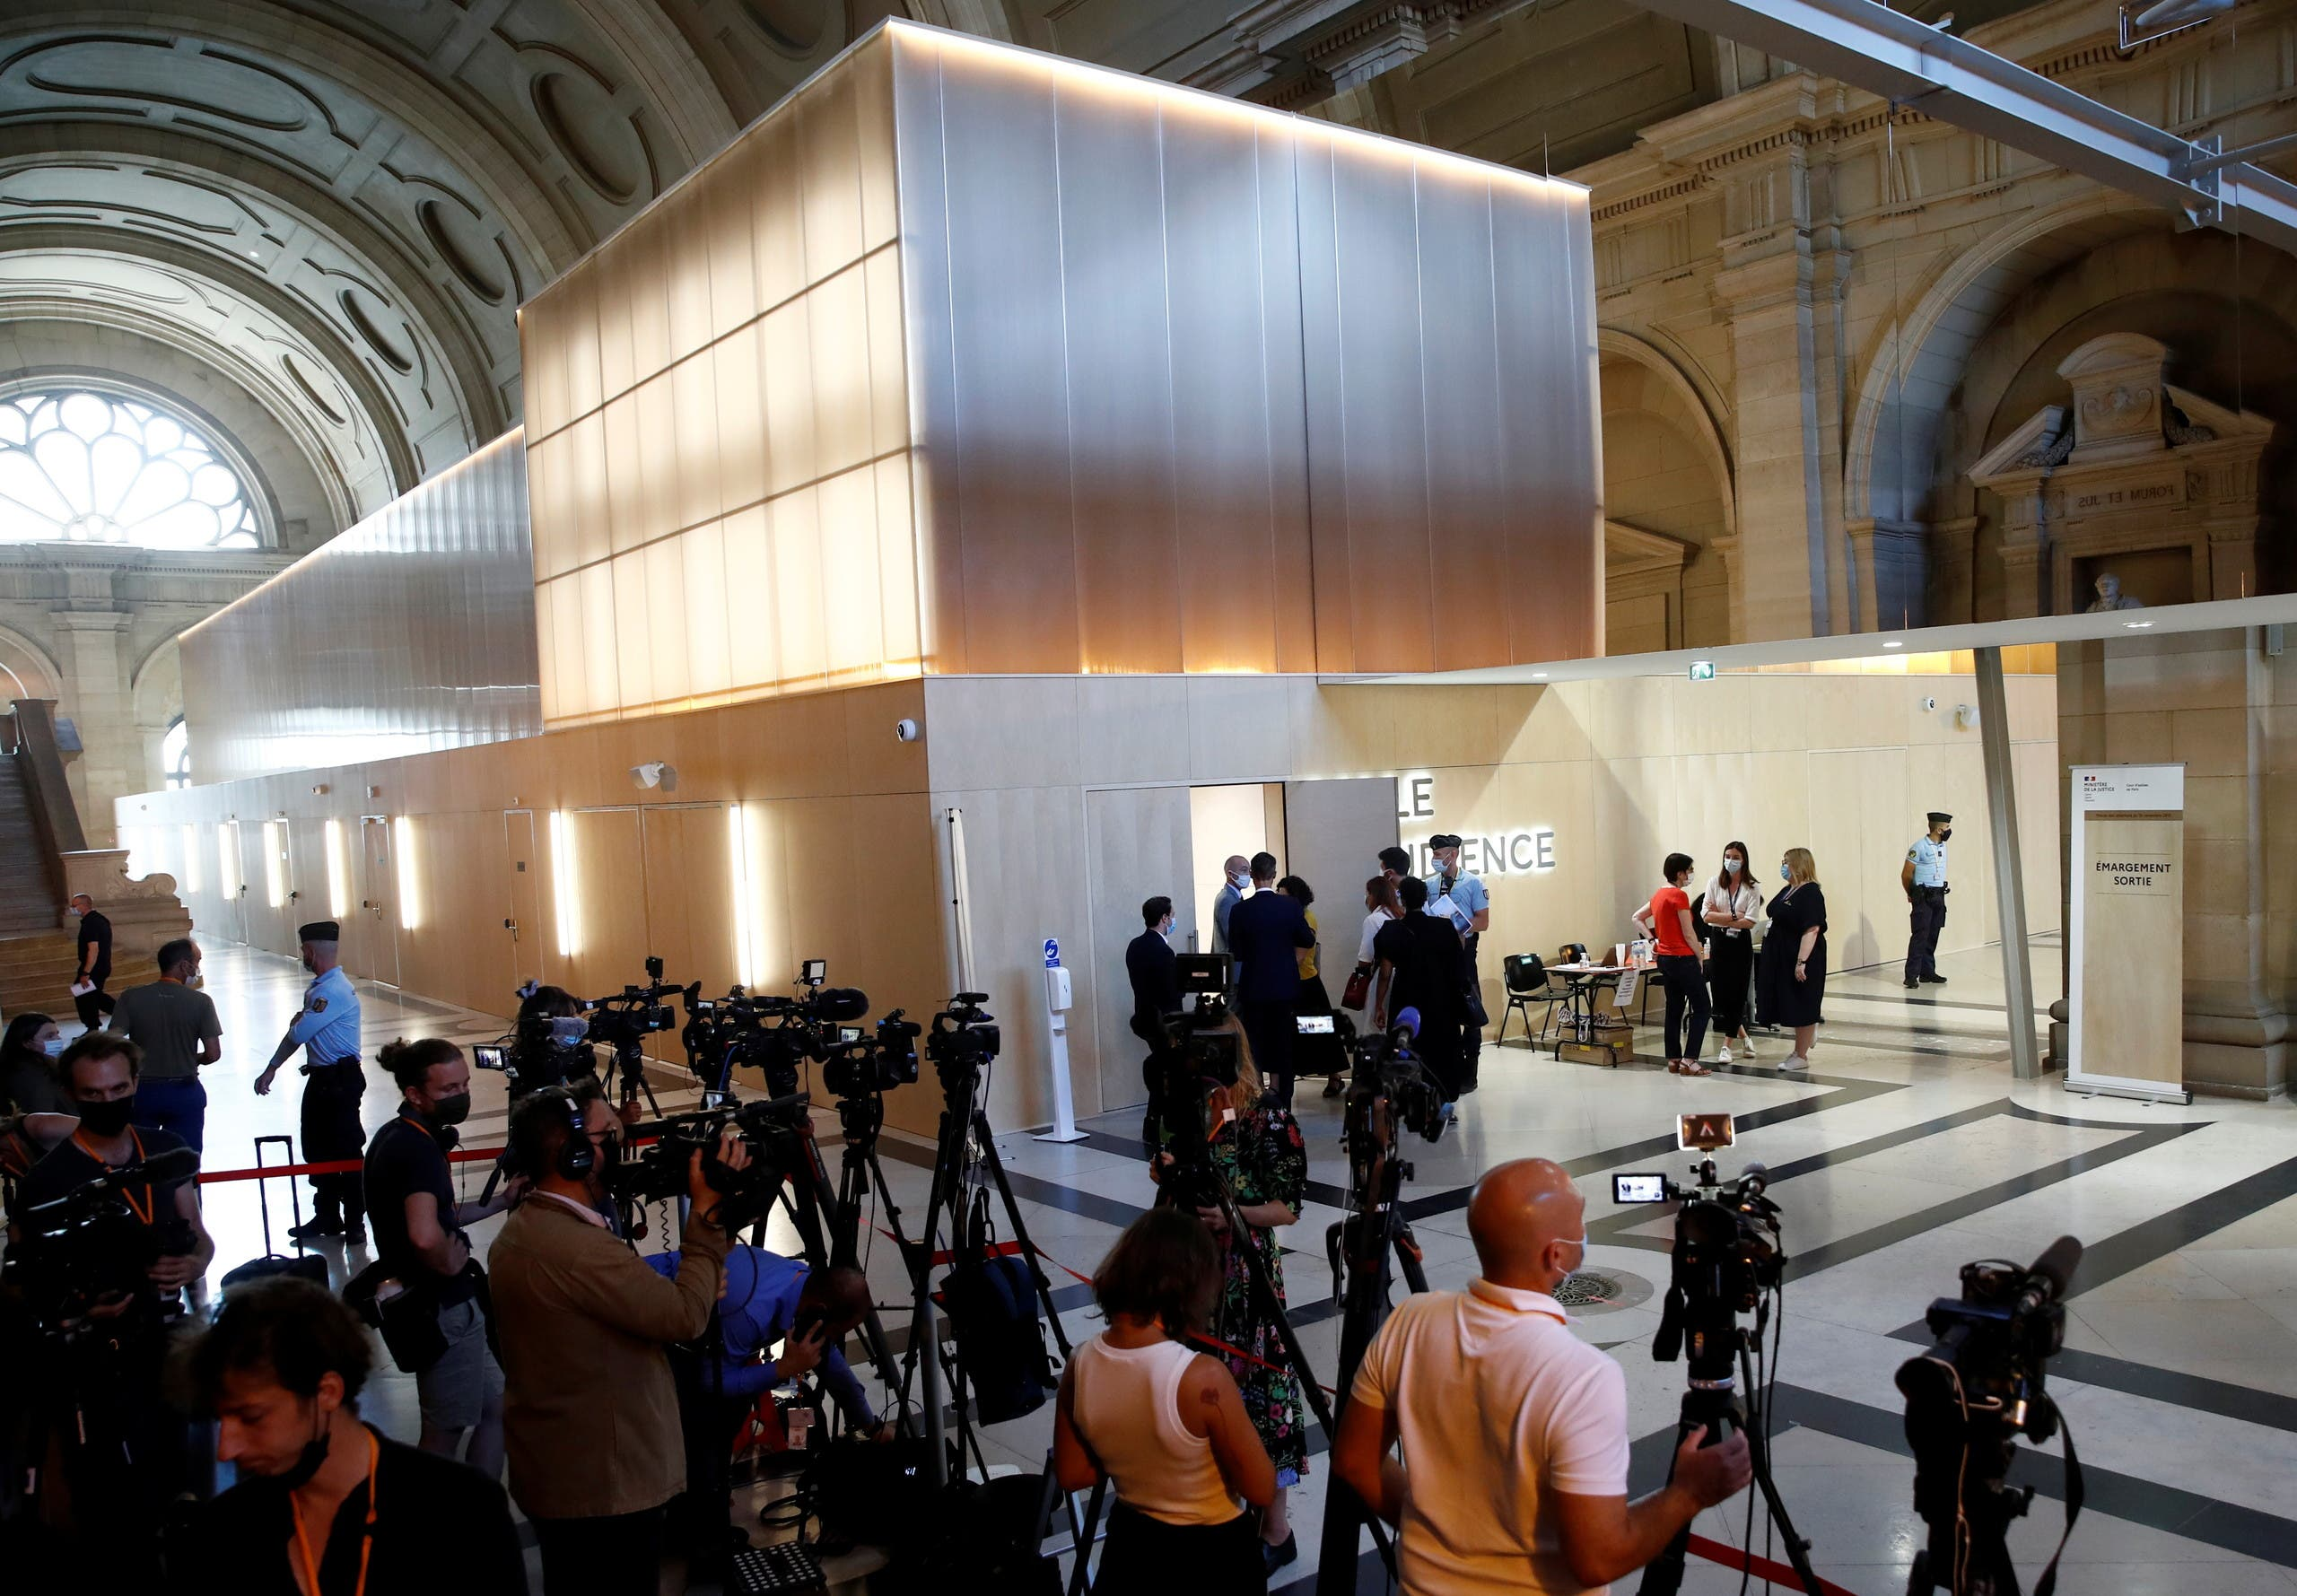 Journalists work in front of the temporary courtroom set up at during the start of the trial of the Paris' November 2015 attacks at the Paris courthouse on the Ile de la Cite, in Paris, France, September 8, 2021. (Reuters)